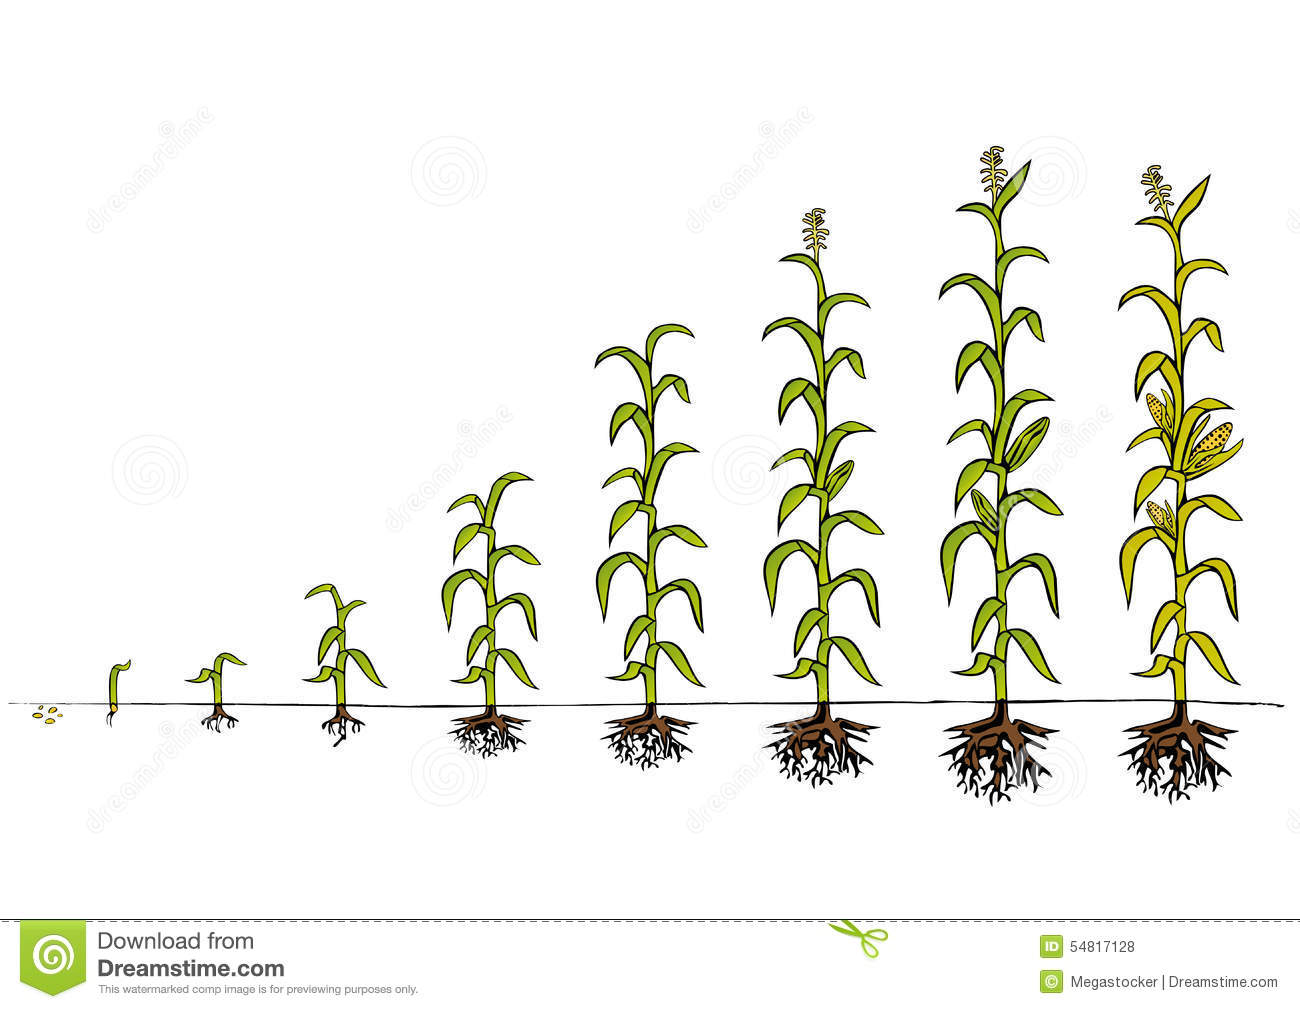 Plant Growth-Stages Of The Plant Development Royalty Free Stock ...